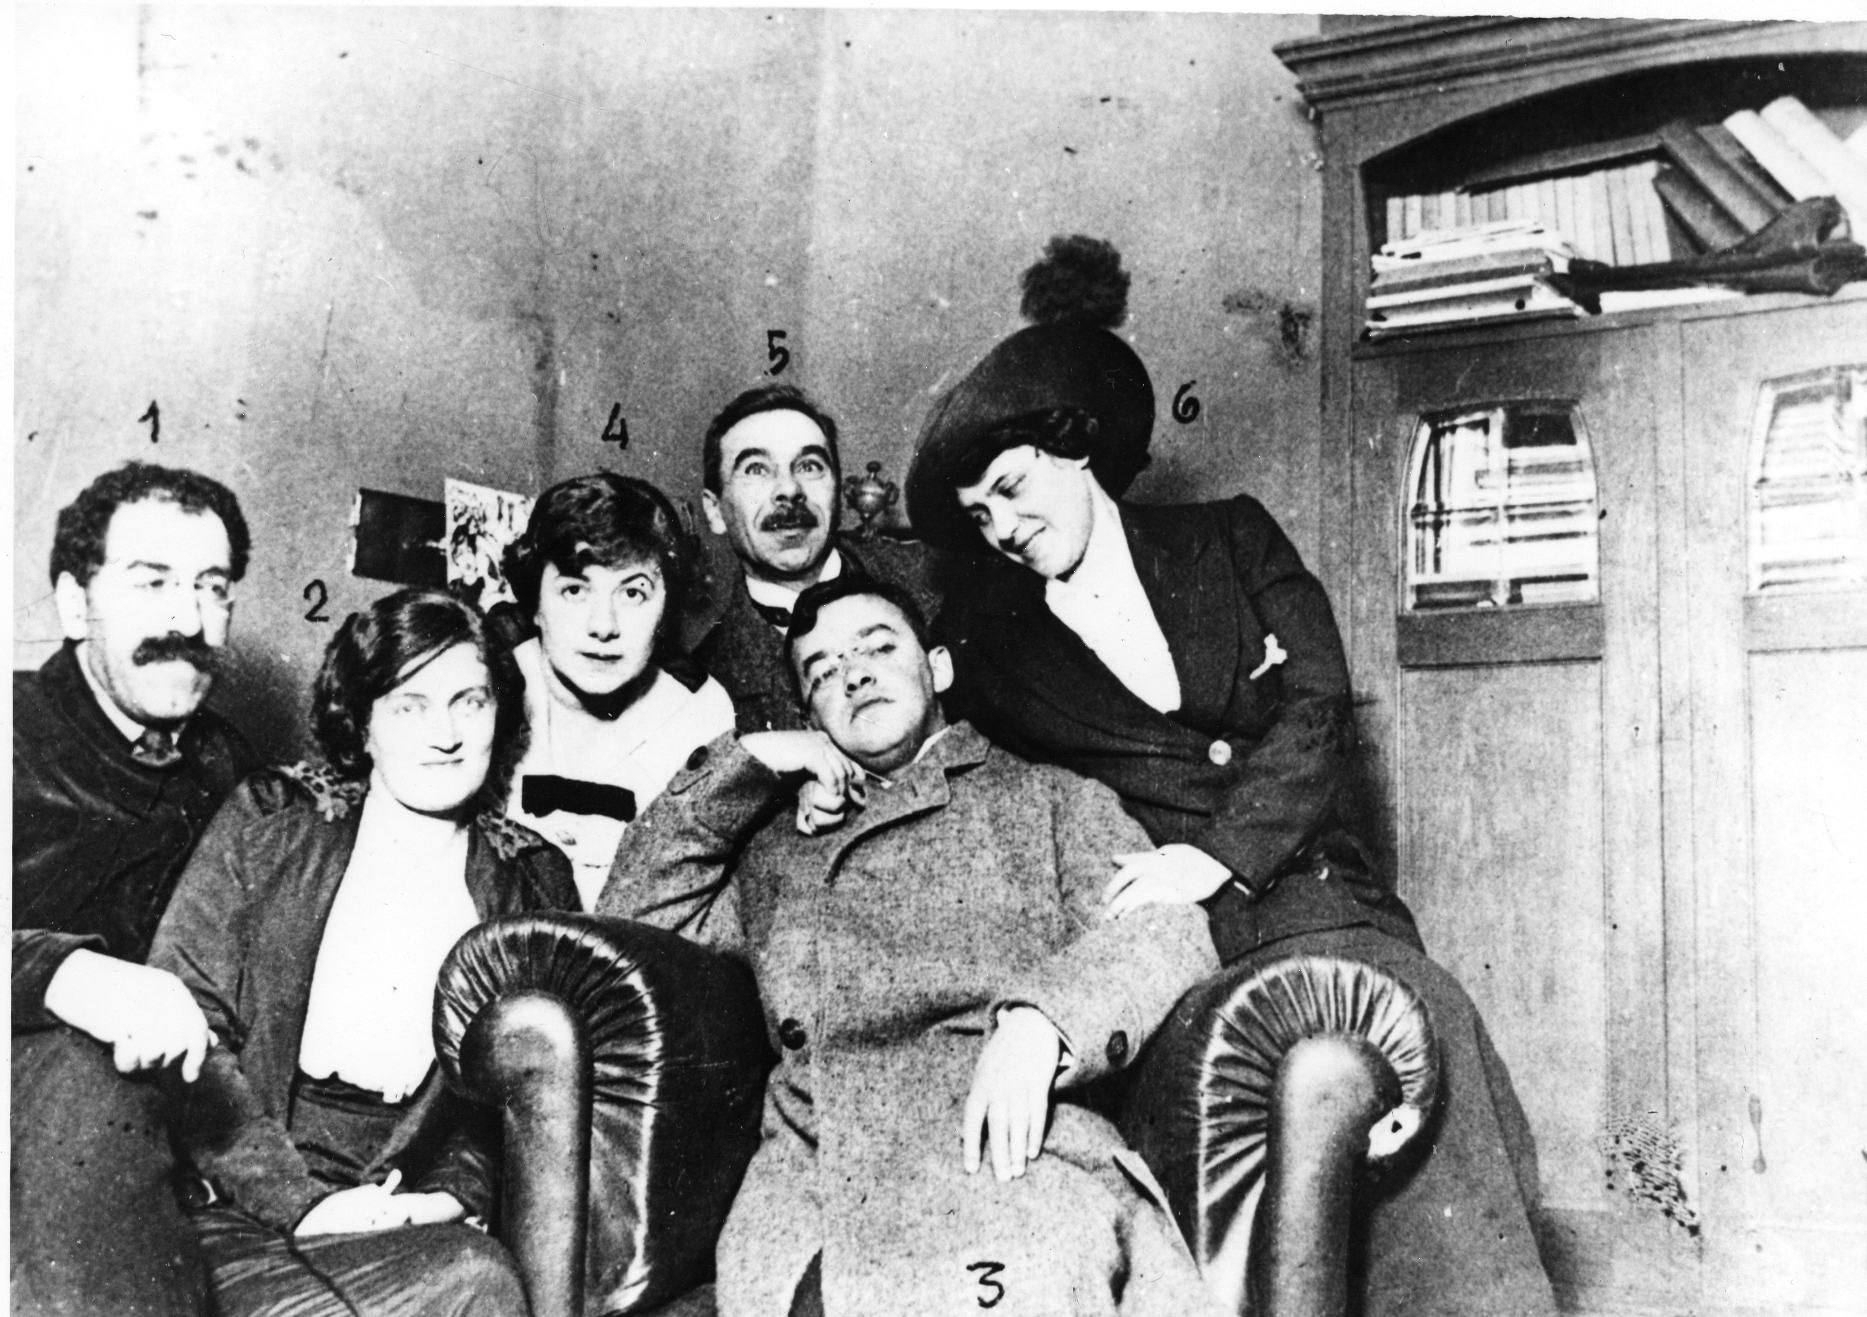 Victor Kugel and wife Maria, Zeev Jabotinsky (seated in armchair) and wife Joanna and Shlomo Zaltzman and his wife during visit to St. Petersburg